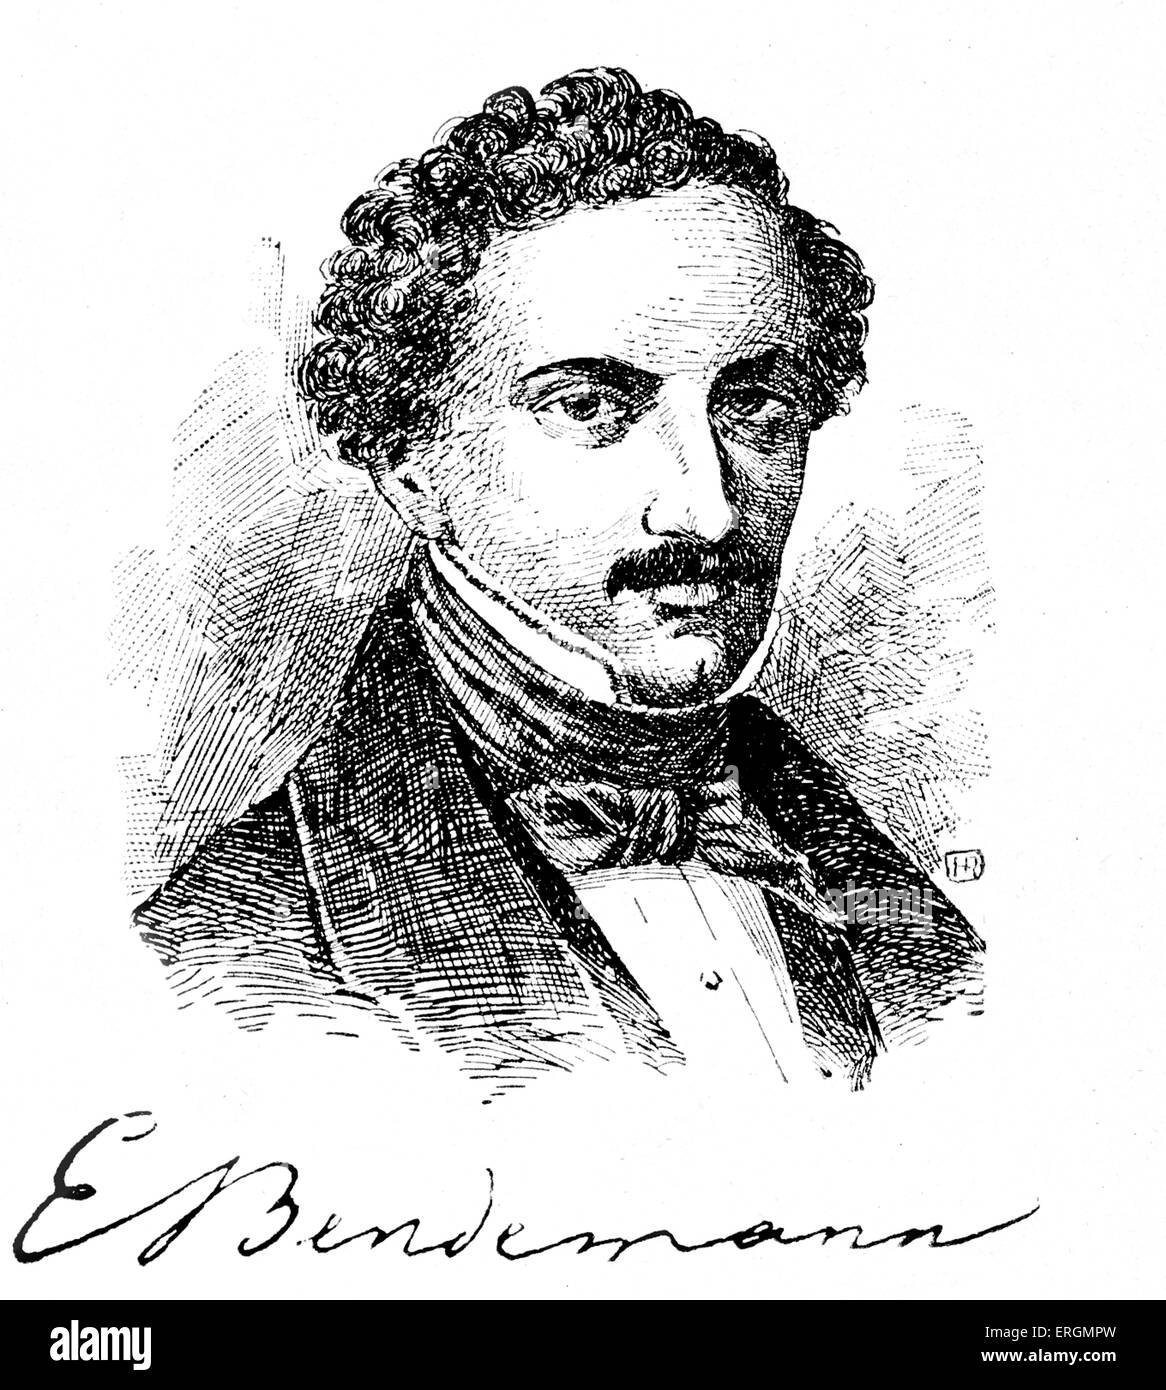 Eduard Bendemann (1811-1889) was a German Jewish painter, and director of the Dusseldorf Academy. - Stock Image